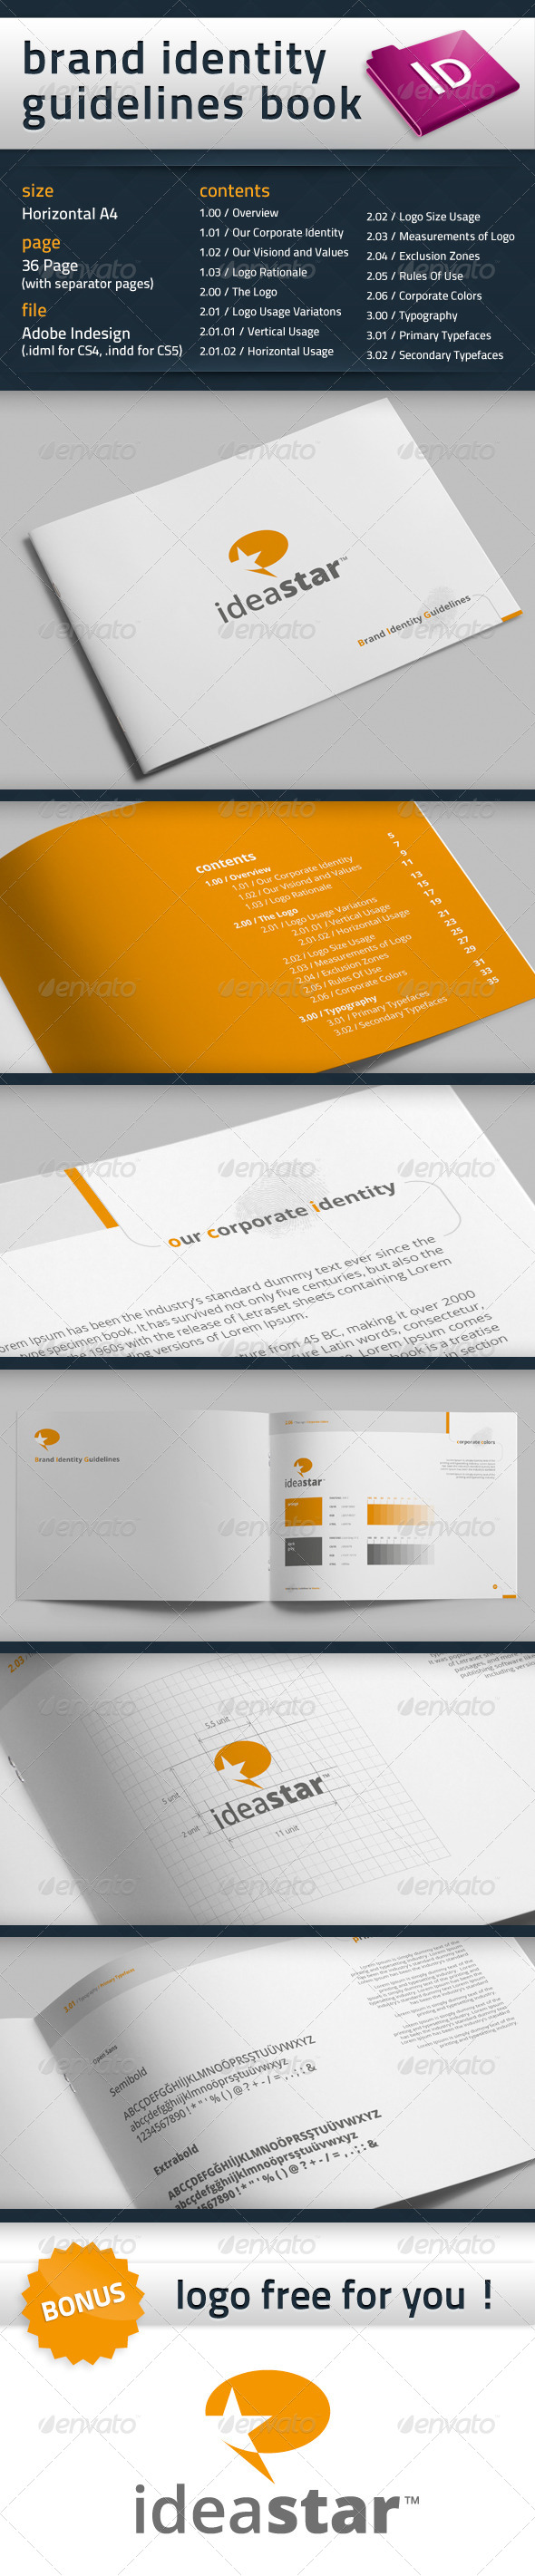 GraphicRiver Brand Identity Guidelines Book 4377923